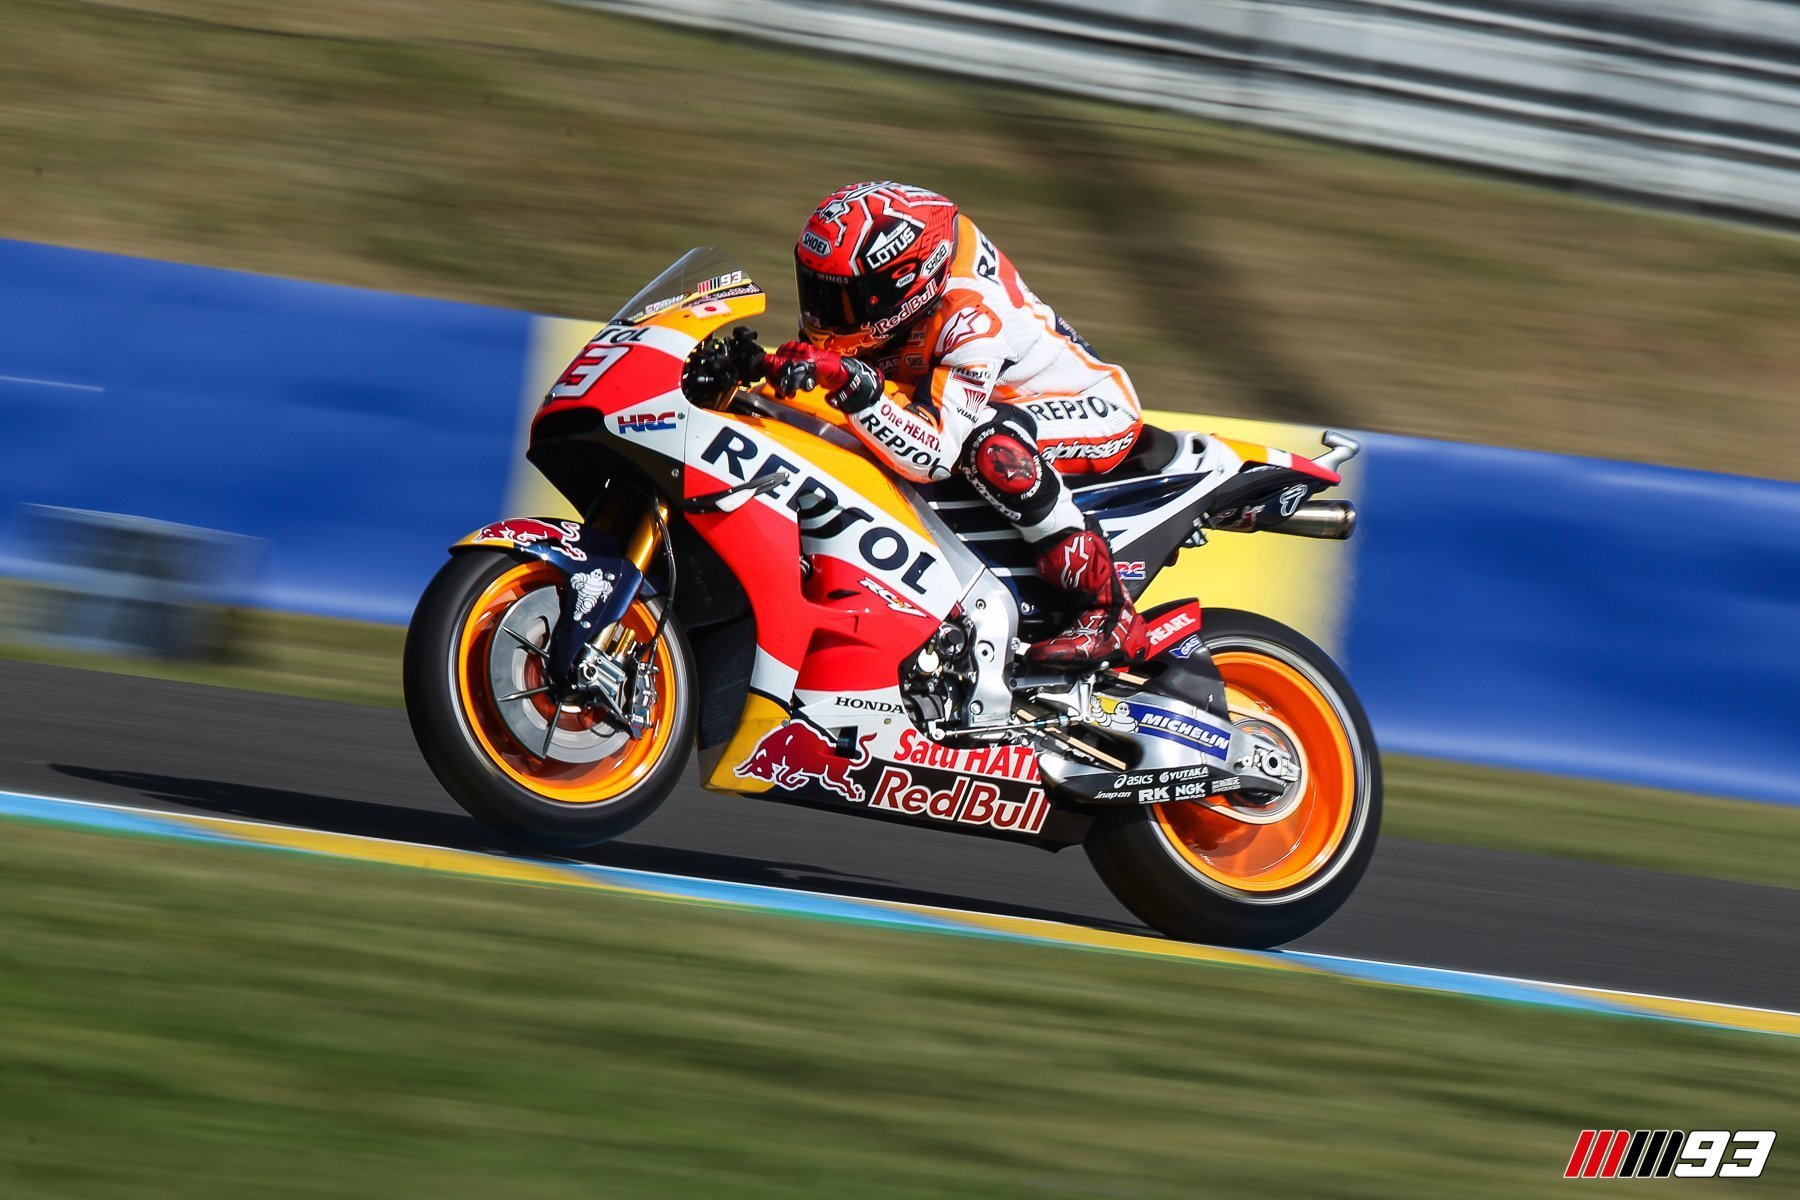 Marc Marquez wants to clim the podium at Mugello - Fan ...